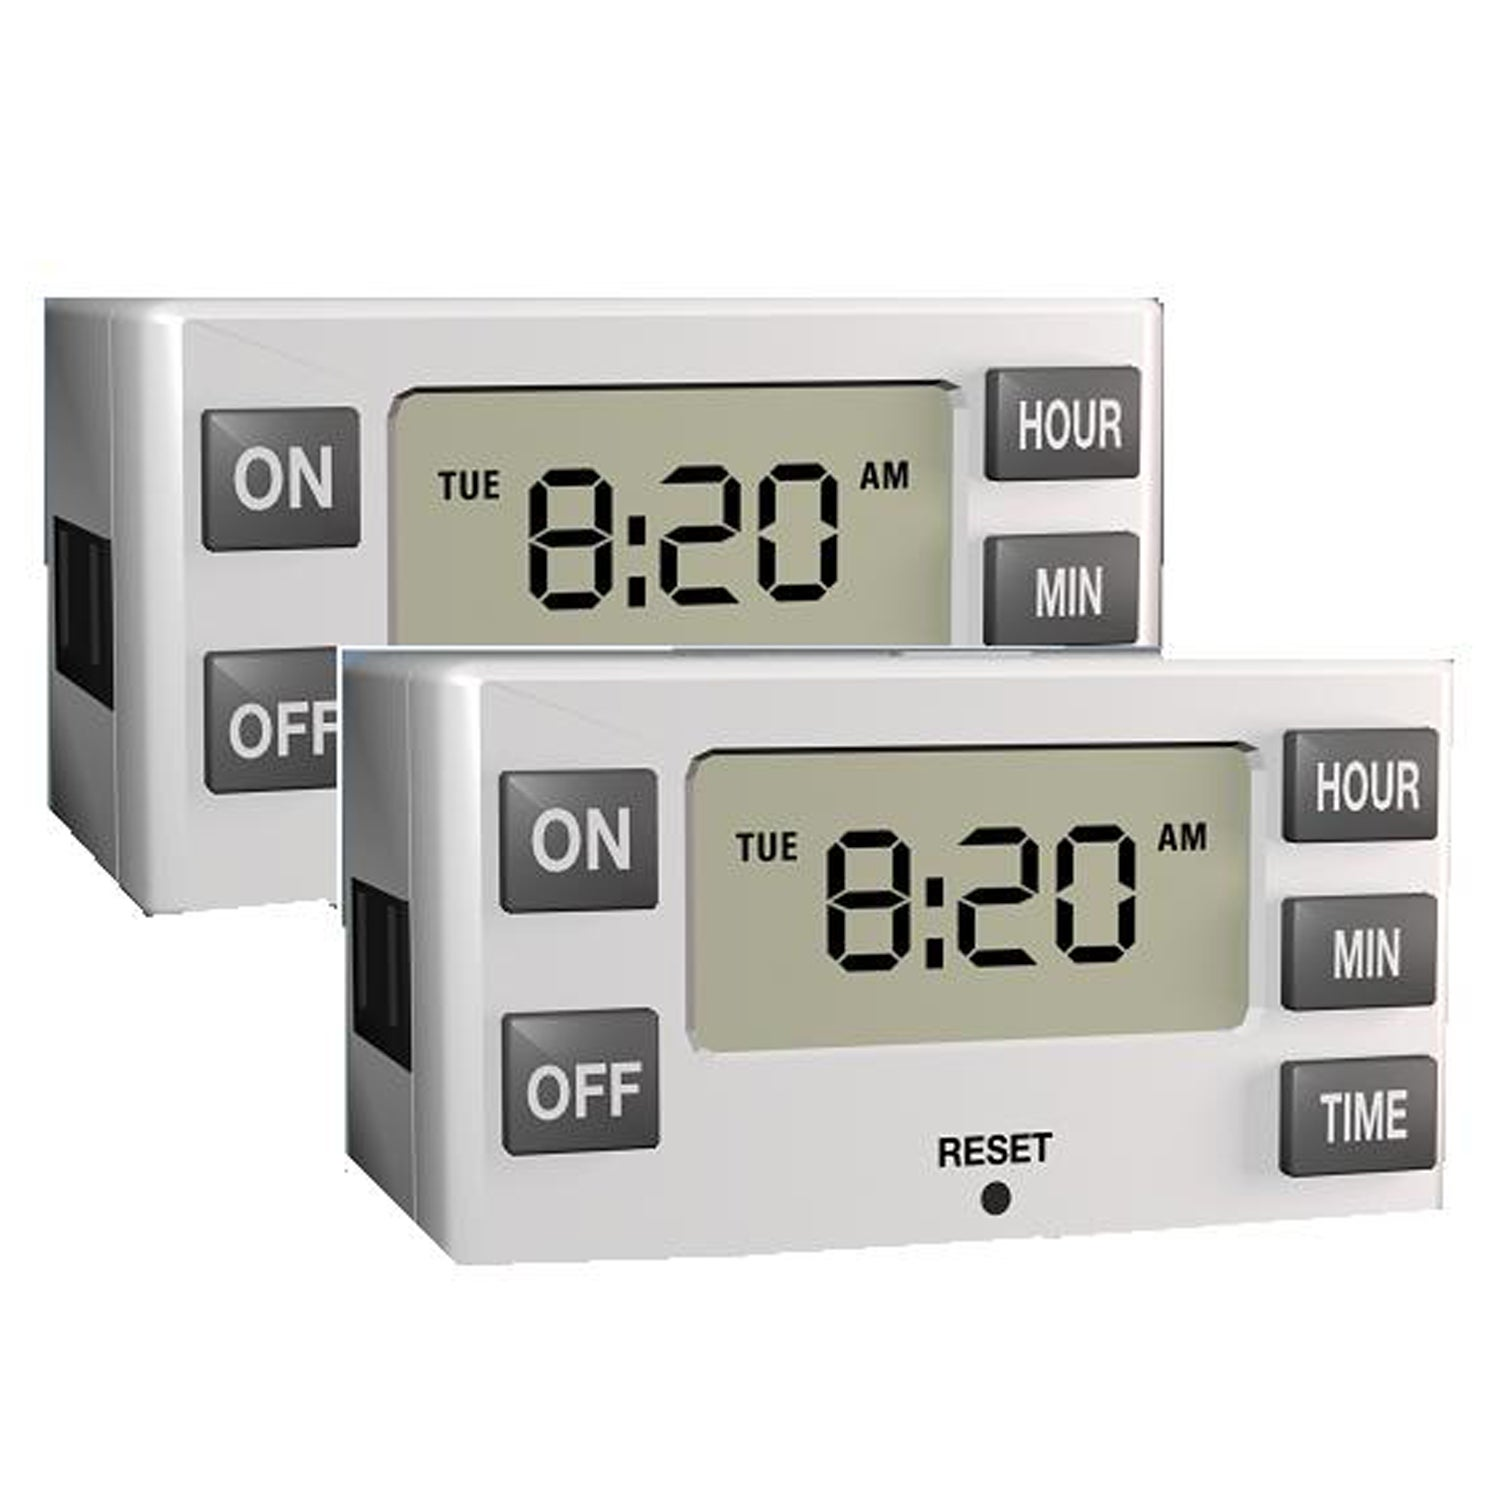 Stanley Timer Max Digital Indoor Lamp Timers (Set Of 2)